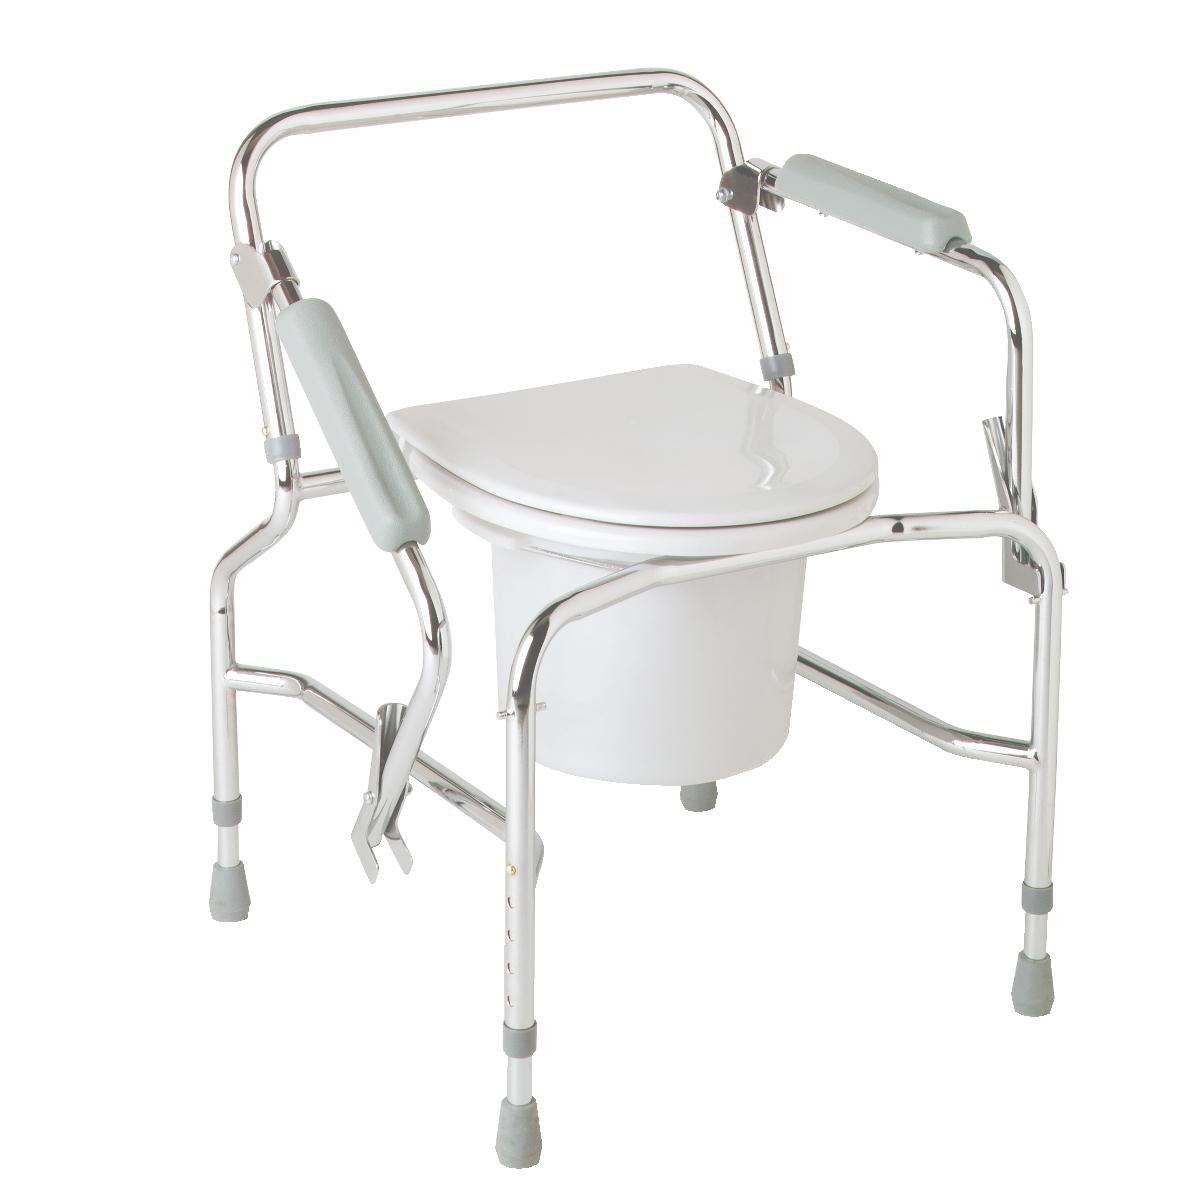 Steel Drop-Arm Commode, COMMODE,DROP ARM,CHROME PLATED,STEEL PF04651